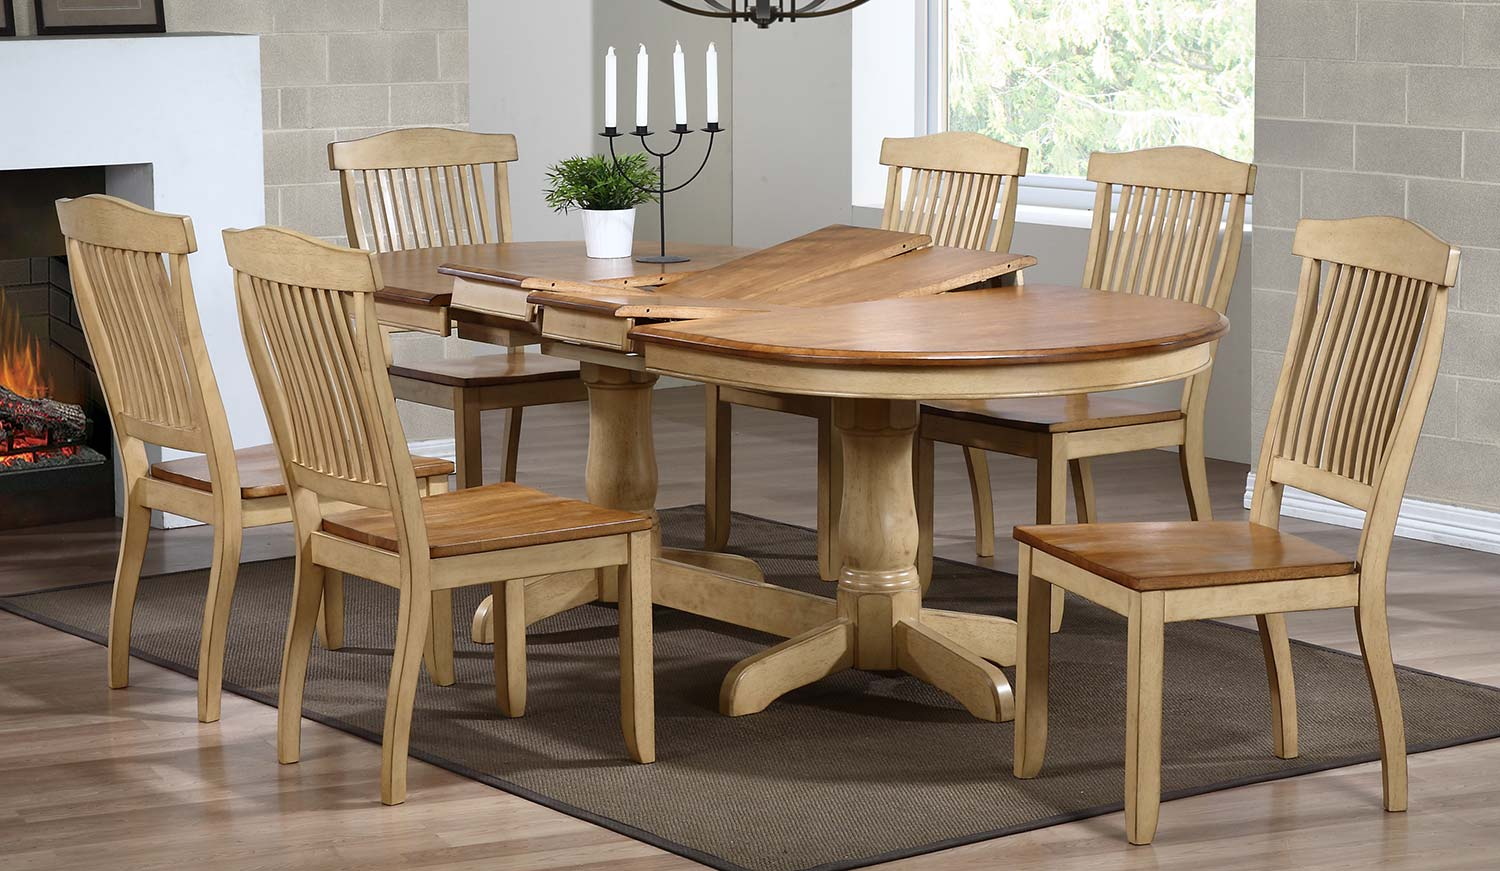 Iconic Furniture Oval Double Pedestal Dining Set with Open Slat Back Dining Chair - Honey/Sand